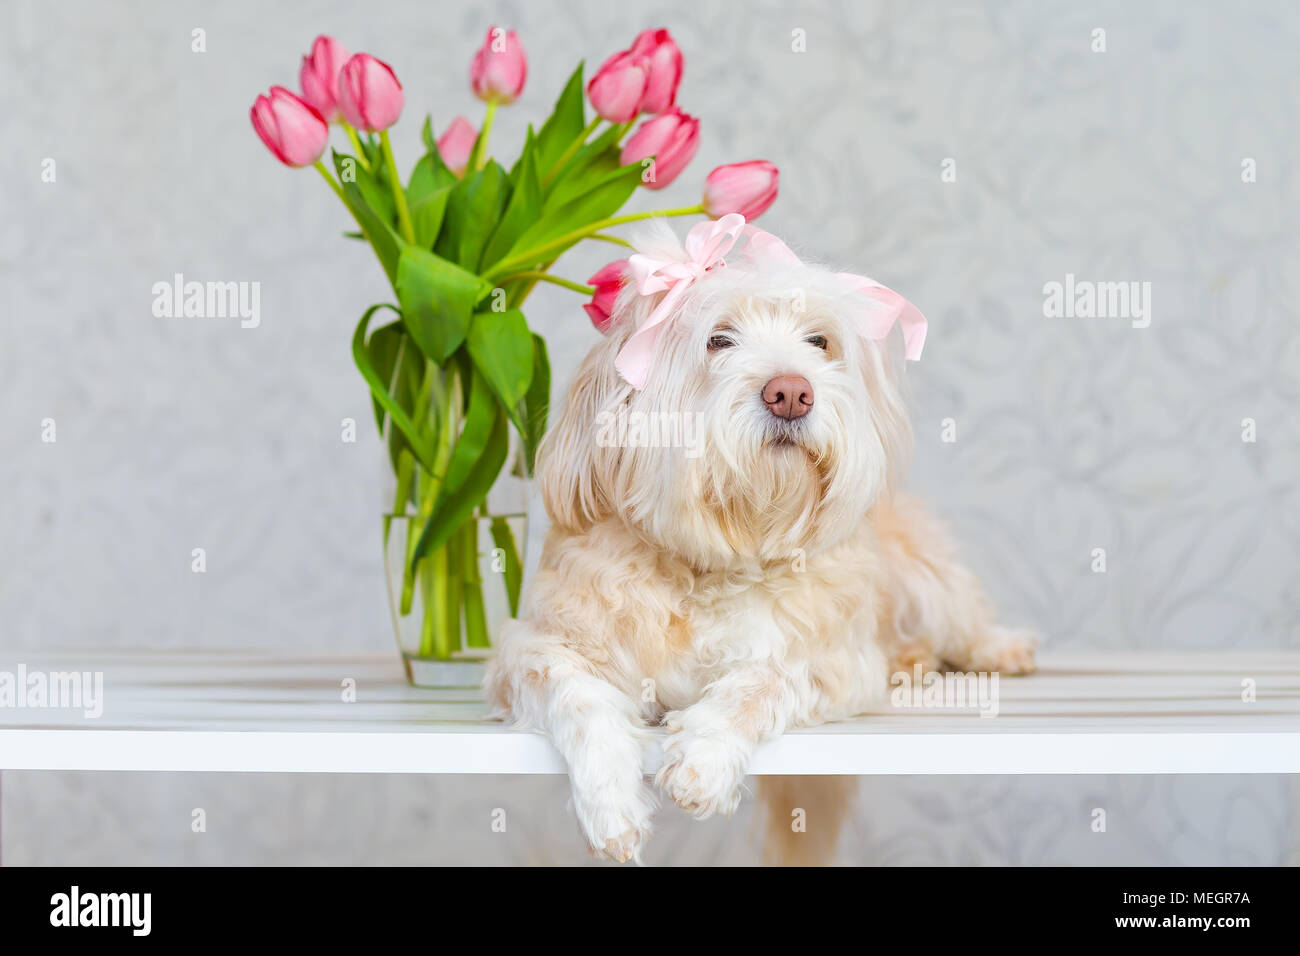 White Dog Sitting Next To A Bouquet Of Flowers In A Vase Pink